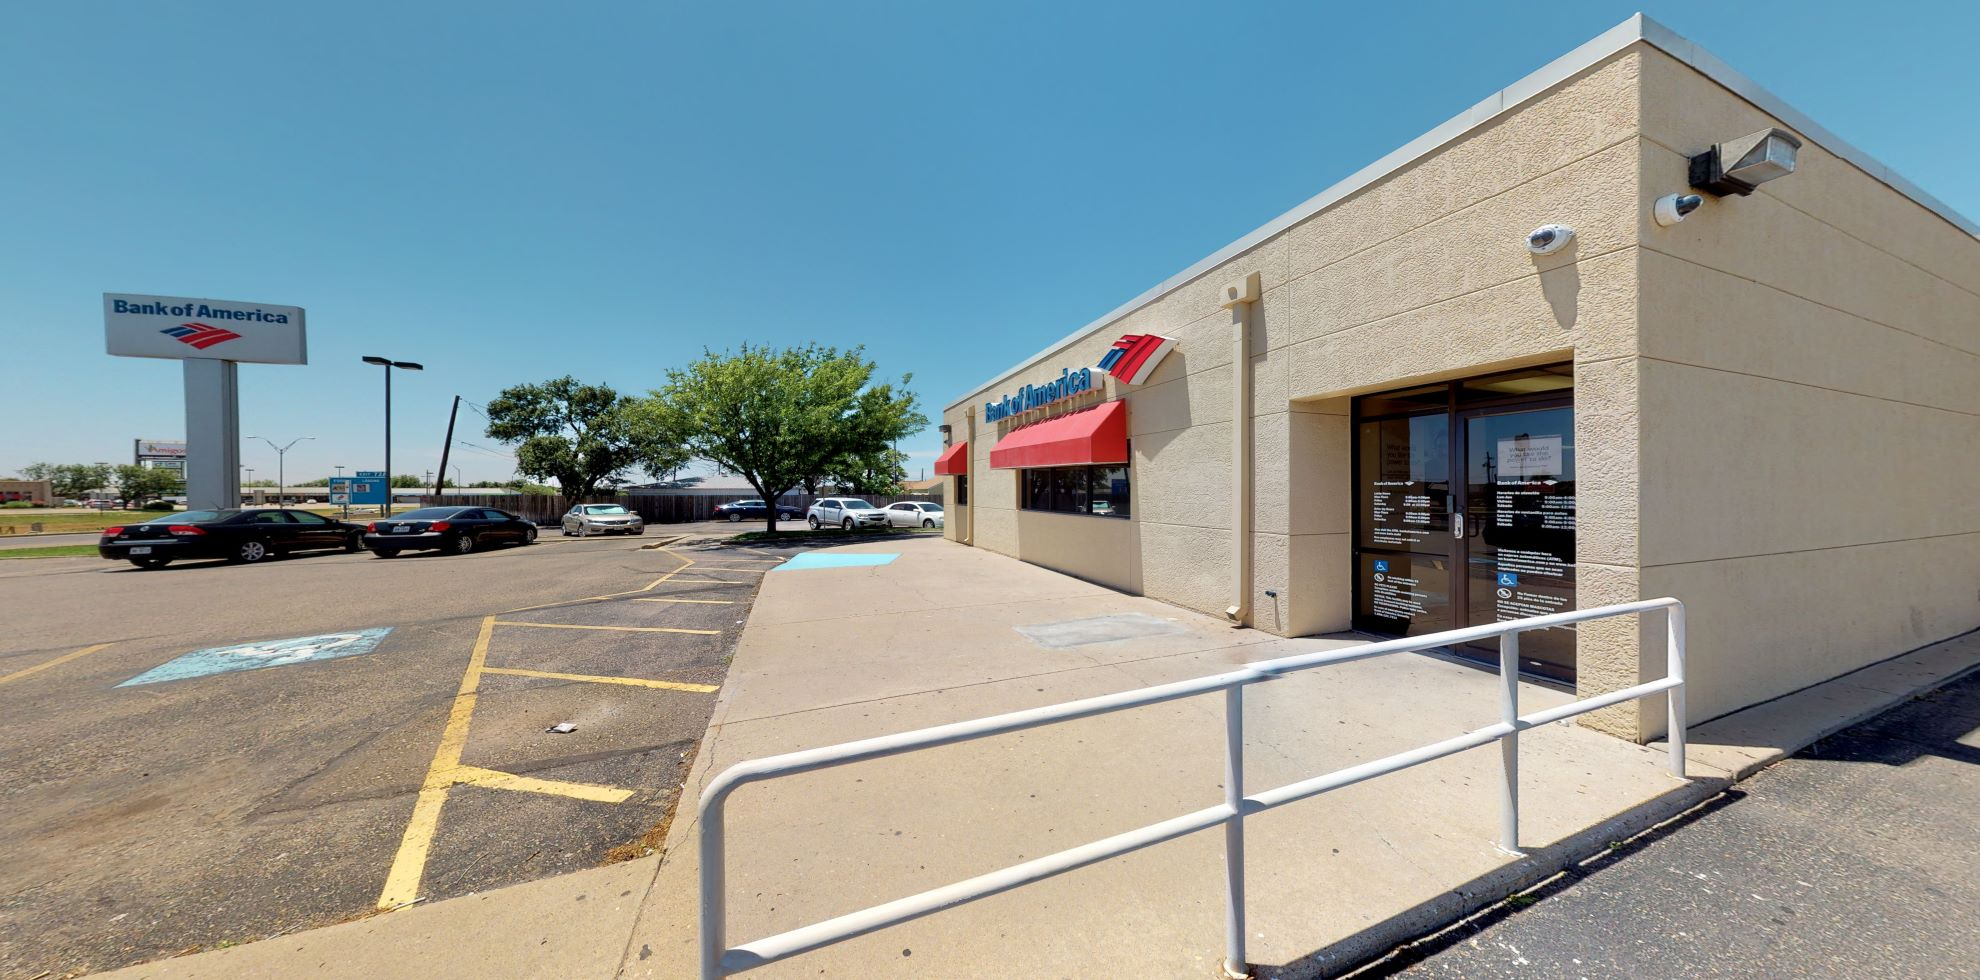 Bank of America financial center with drive-thru ATM and teller   3509 E Interstate 40, Amarillo, TX 79104